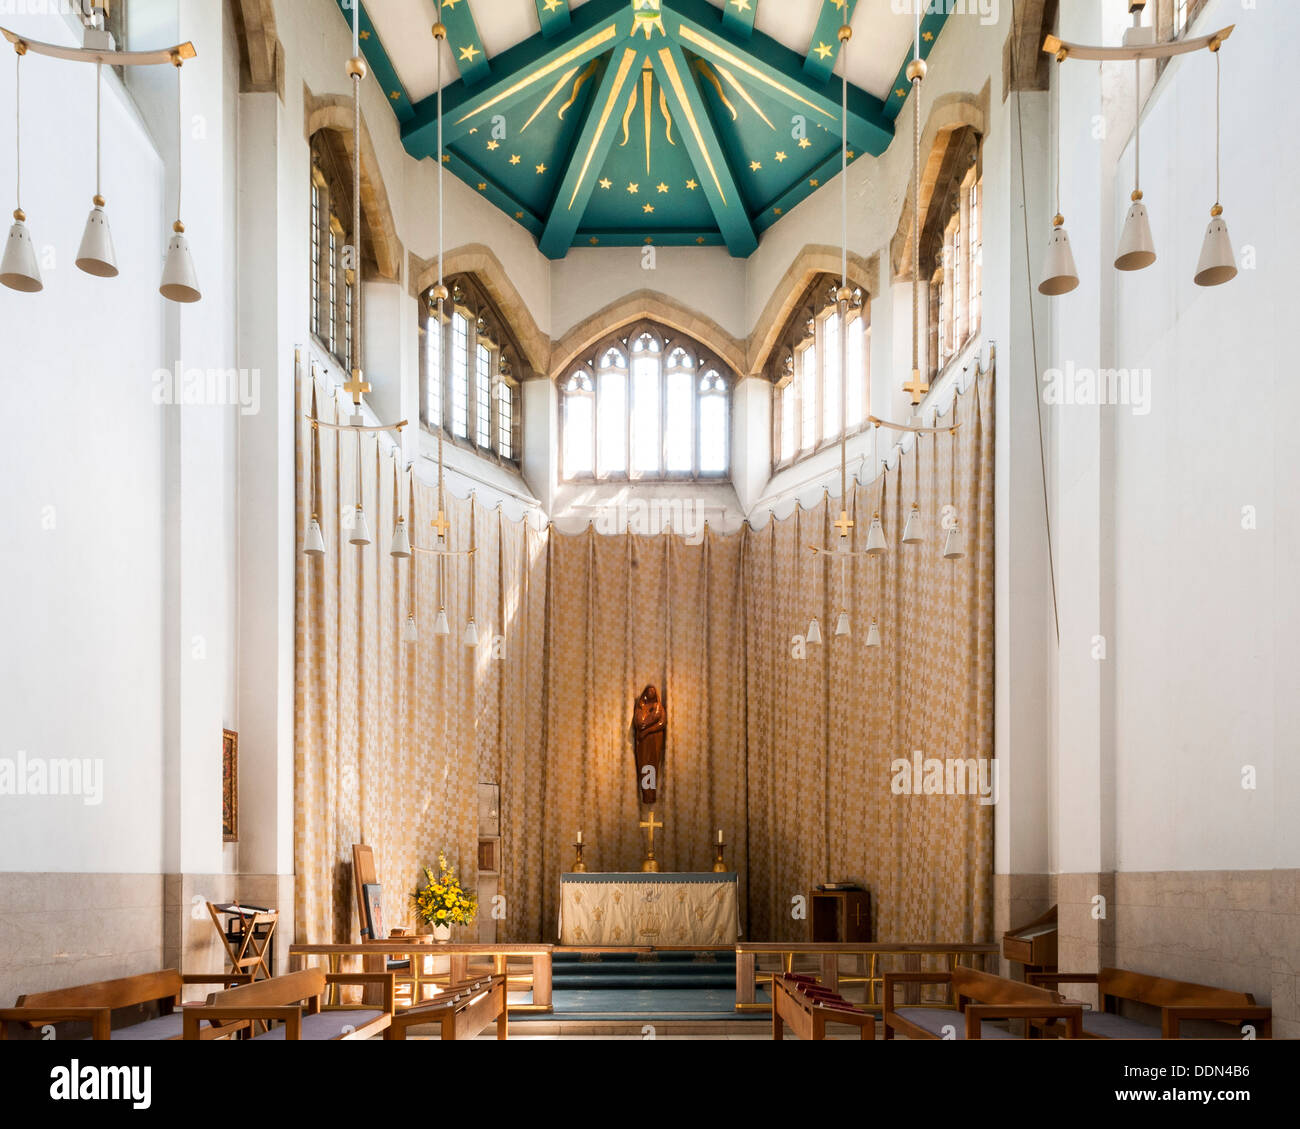 Guildford Cathedral, Guildford, United Kingdom. Architect: Sir Edward Maufe, 1961. Chapel. Stock Photo